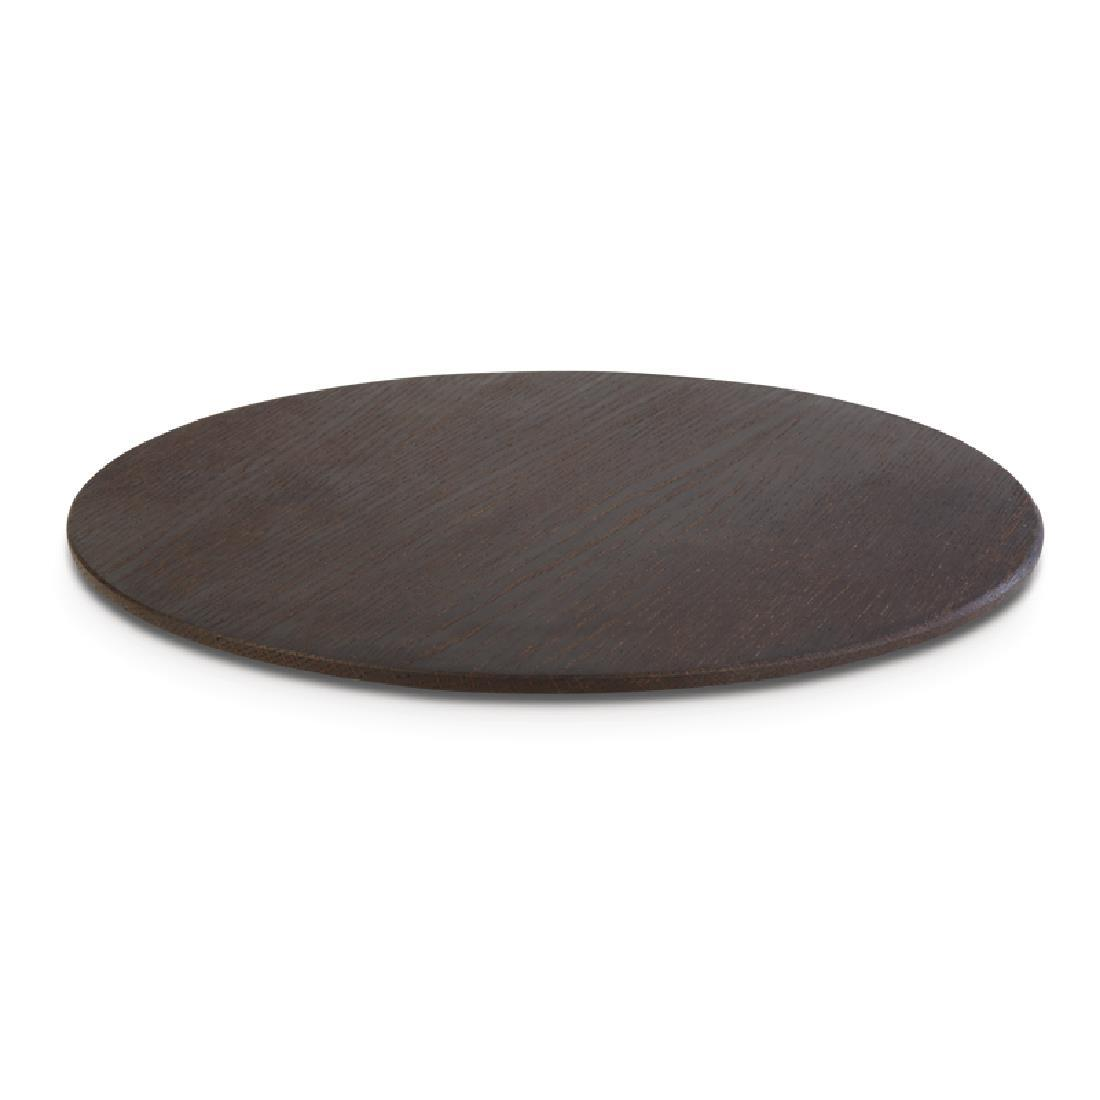 DE555 - APS+ Oak Wood Platter 300mm - Each - DE555